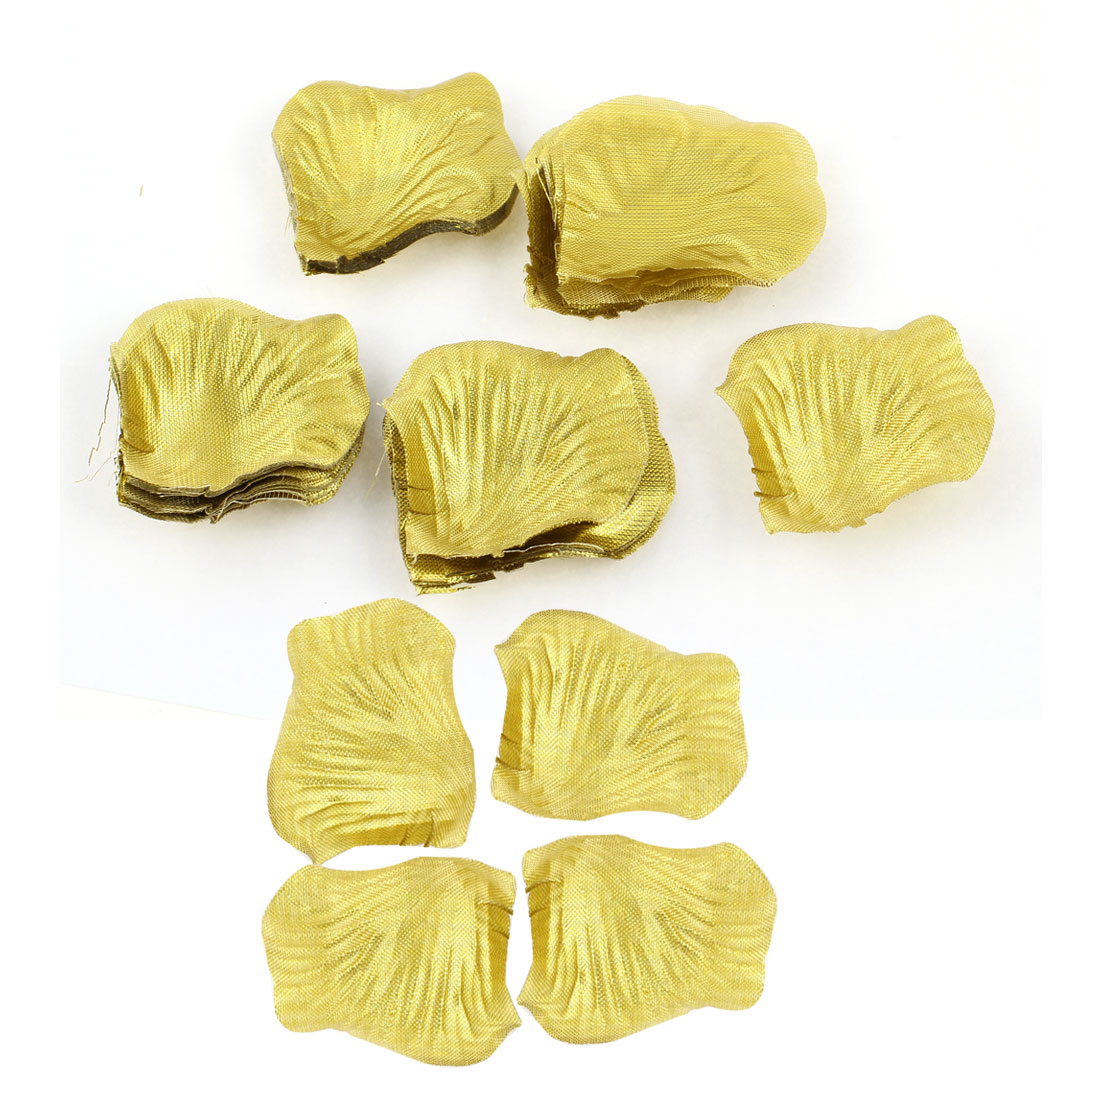 100 Pcs Fabric Rose Floral Petals Bridal Party Embellishment Gold Tone